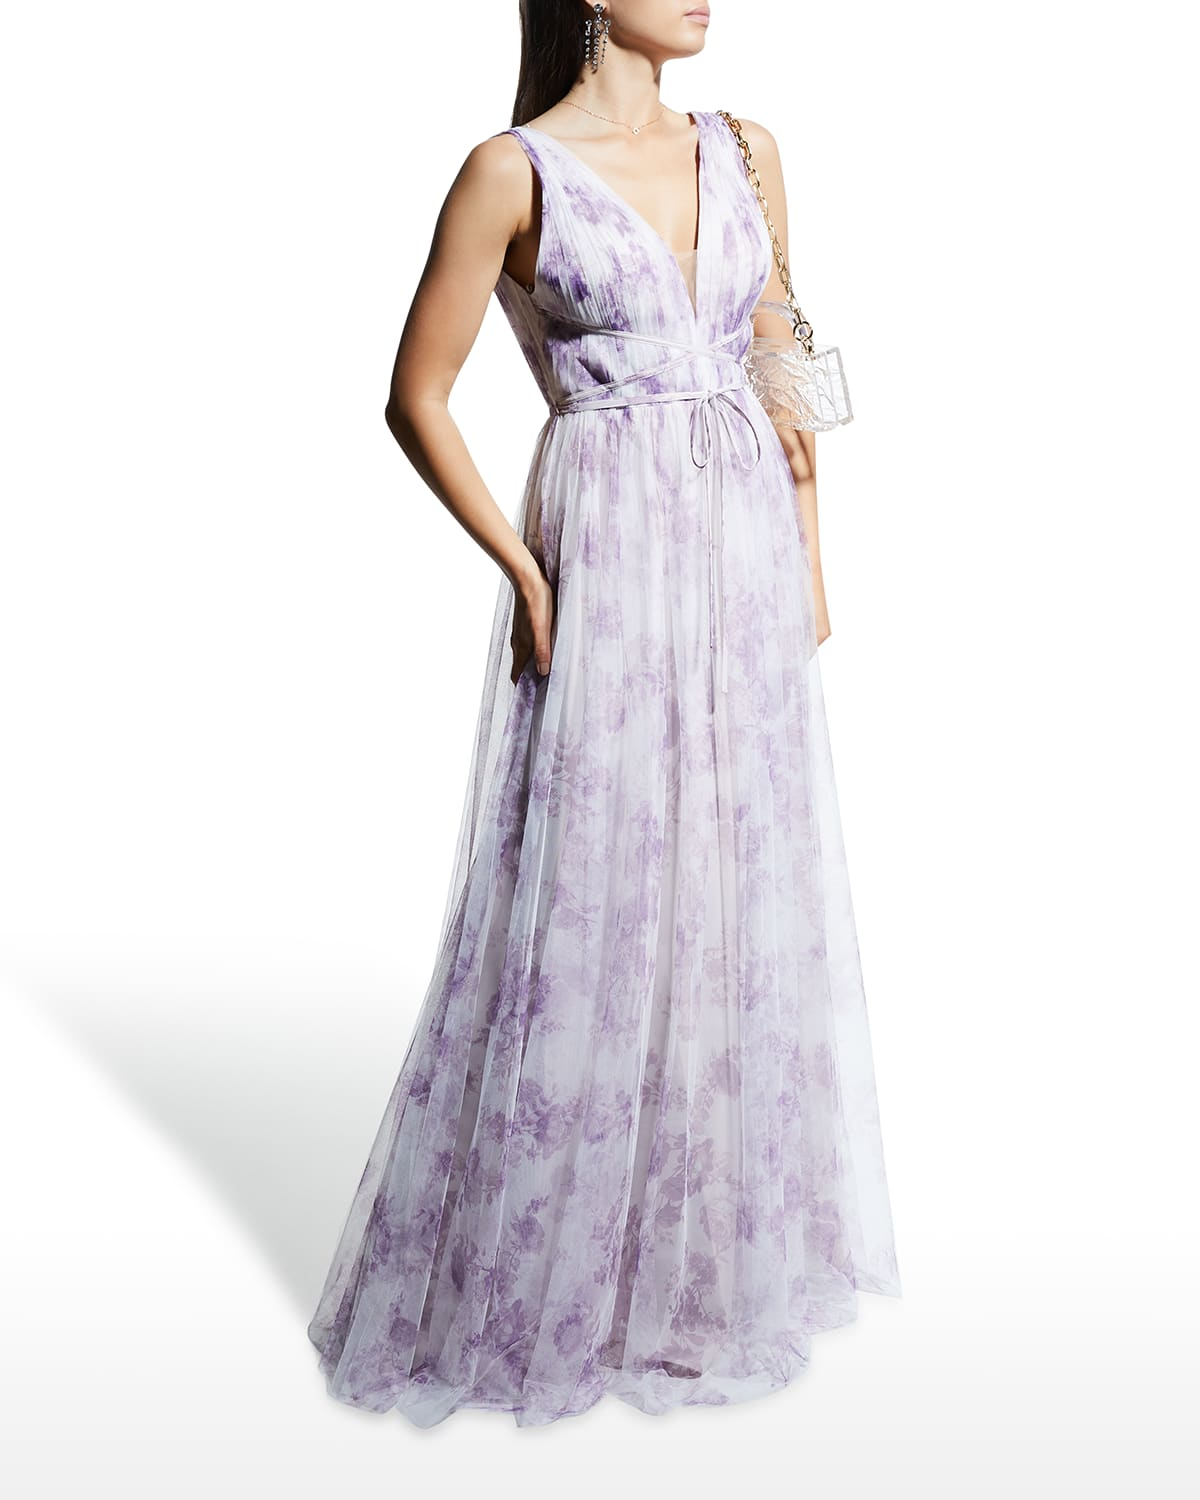 Porcelain-Printed Tulle Sleeveless A-Line Gown